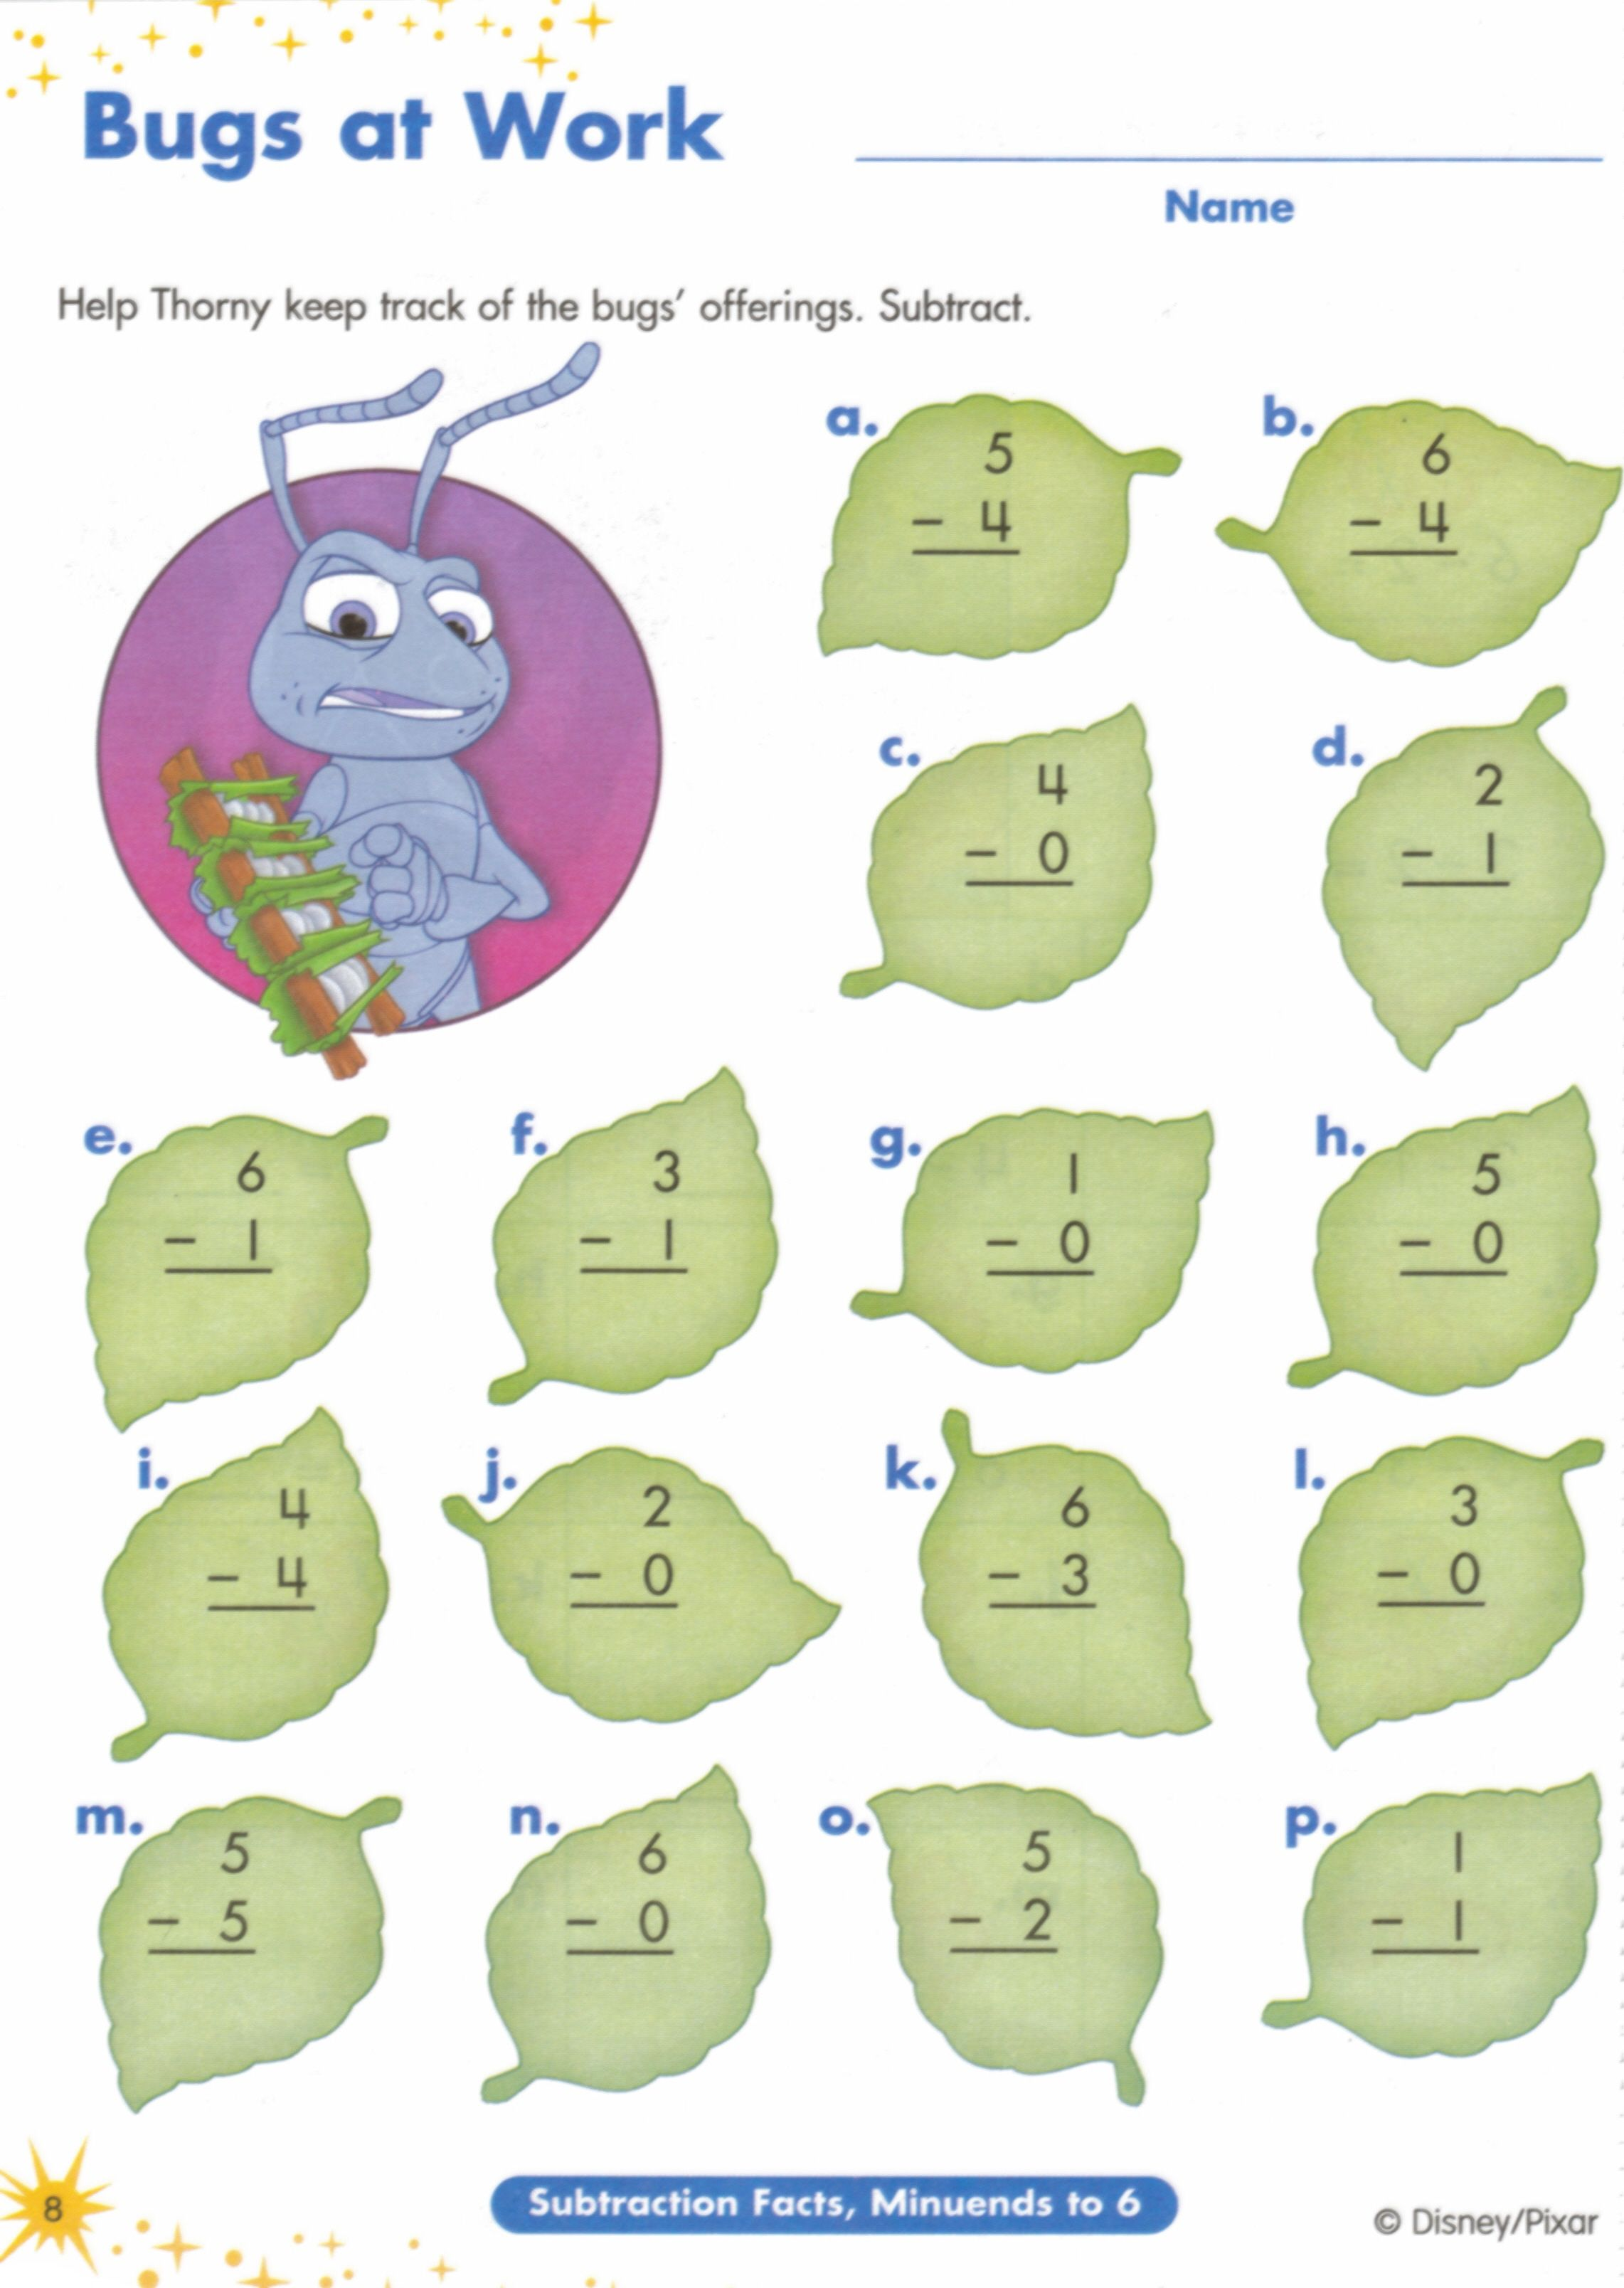 Proatmealus  Terrific  Images About Worksheets On Pinterest  Fun Facts For Kids  With Marvelous  Images About Worksheets On Pinterest  Fun Facts For Kids Earth Day Worksheets And Jungles With Adorable Weather Comprehension Worksheets Also English Worksheets For Year  In Addition Astronomy Worksheets For Kids And Maths For Kindergarten Free Printable Worksheets As Well As Physics Motion Worksheet Additionally Sequence Practice Worksheets From Pinterestcom With Proatmealus  Marvelous  Images About Worksheets On Pinterest  Fun Facts For Kids  With Adorable  Images About Worksheets On Pinterest  Fun Facts For Kids Earth Day Worksheets And Jungles And Terrific Weather Comprehension Worksheets Also English Worksheets For Year  In Addition Astronomy Worksheets For Kids From Pinterestcom